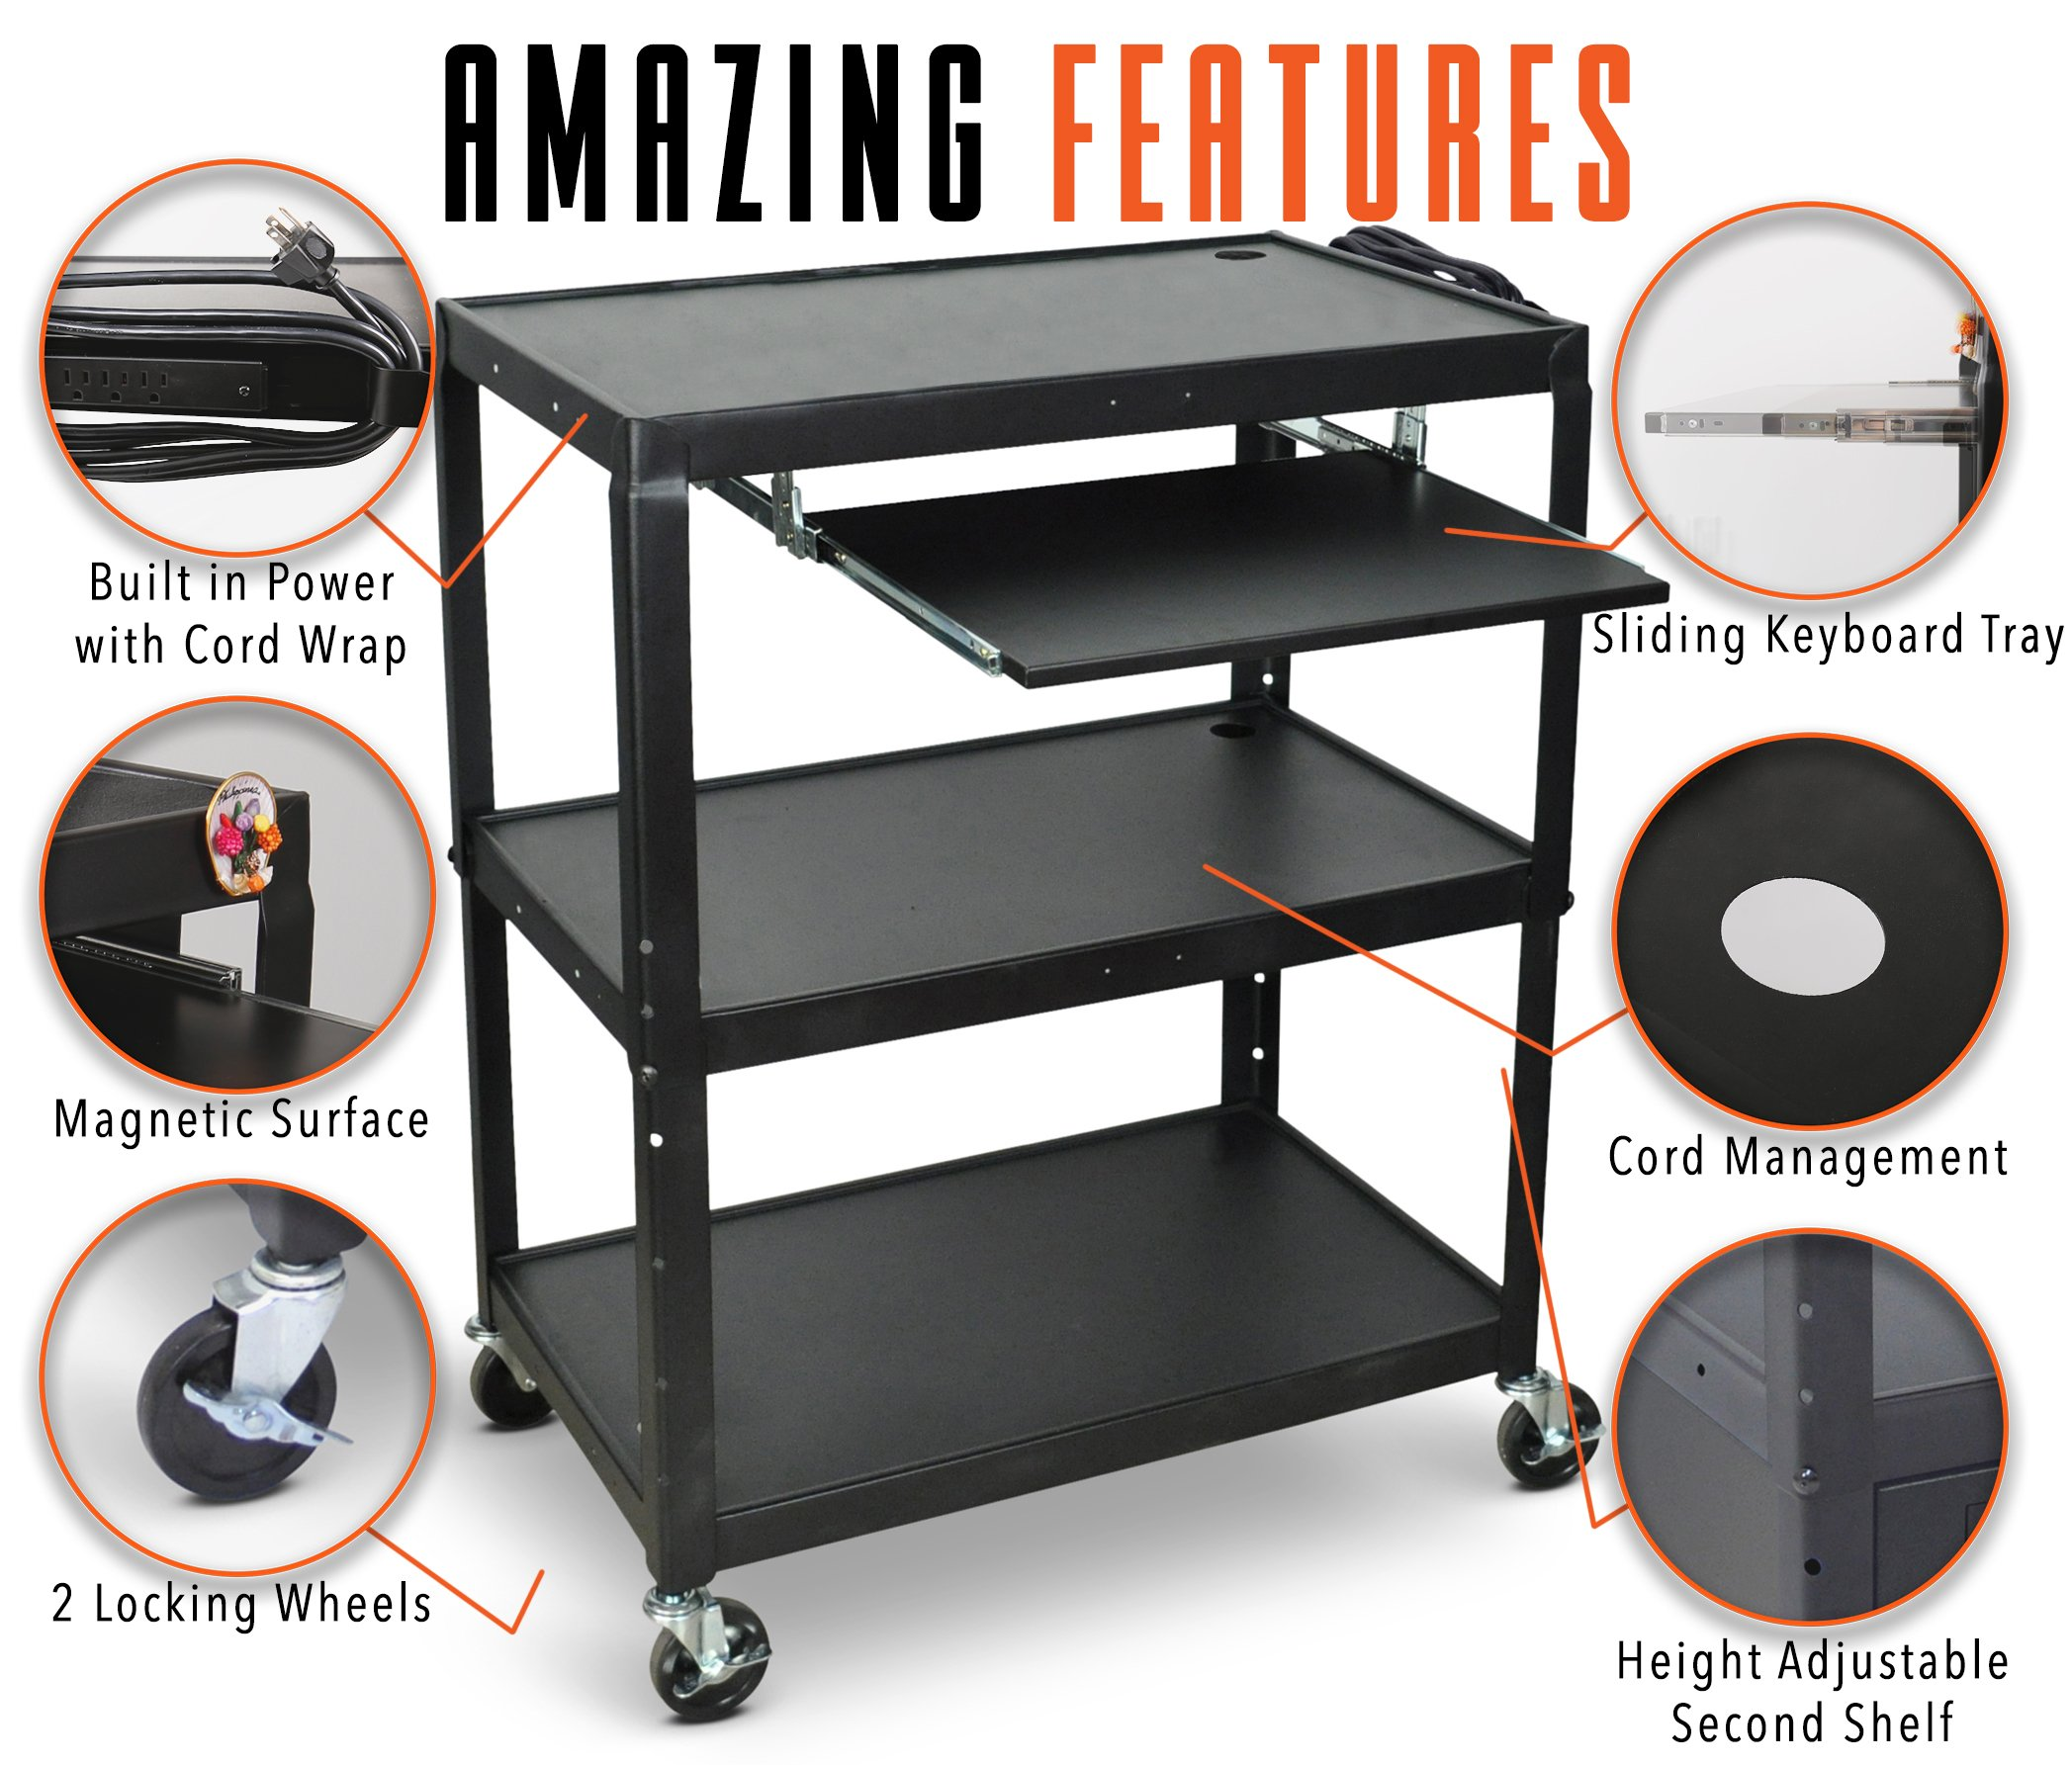 Line Leader Extra Wide AV Cart with Lockable Wheels -Adjustable Shelf Height- Includes Pullout Keyboard Tray and Cord Management! (42x32x20) (Extra Wide AV Cart - Black) by Stand Steady (Image #2)